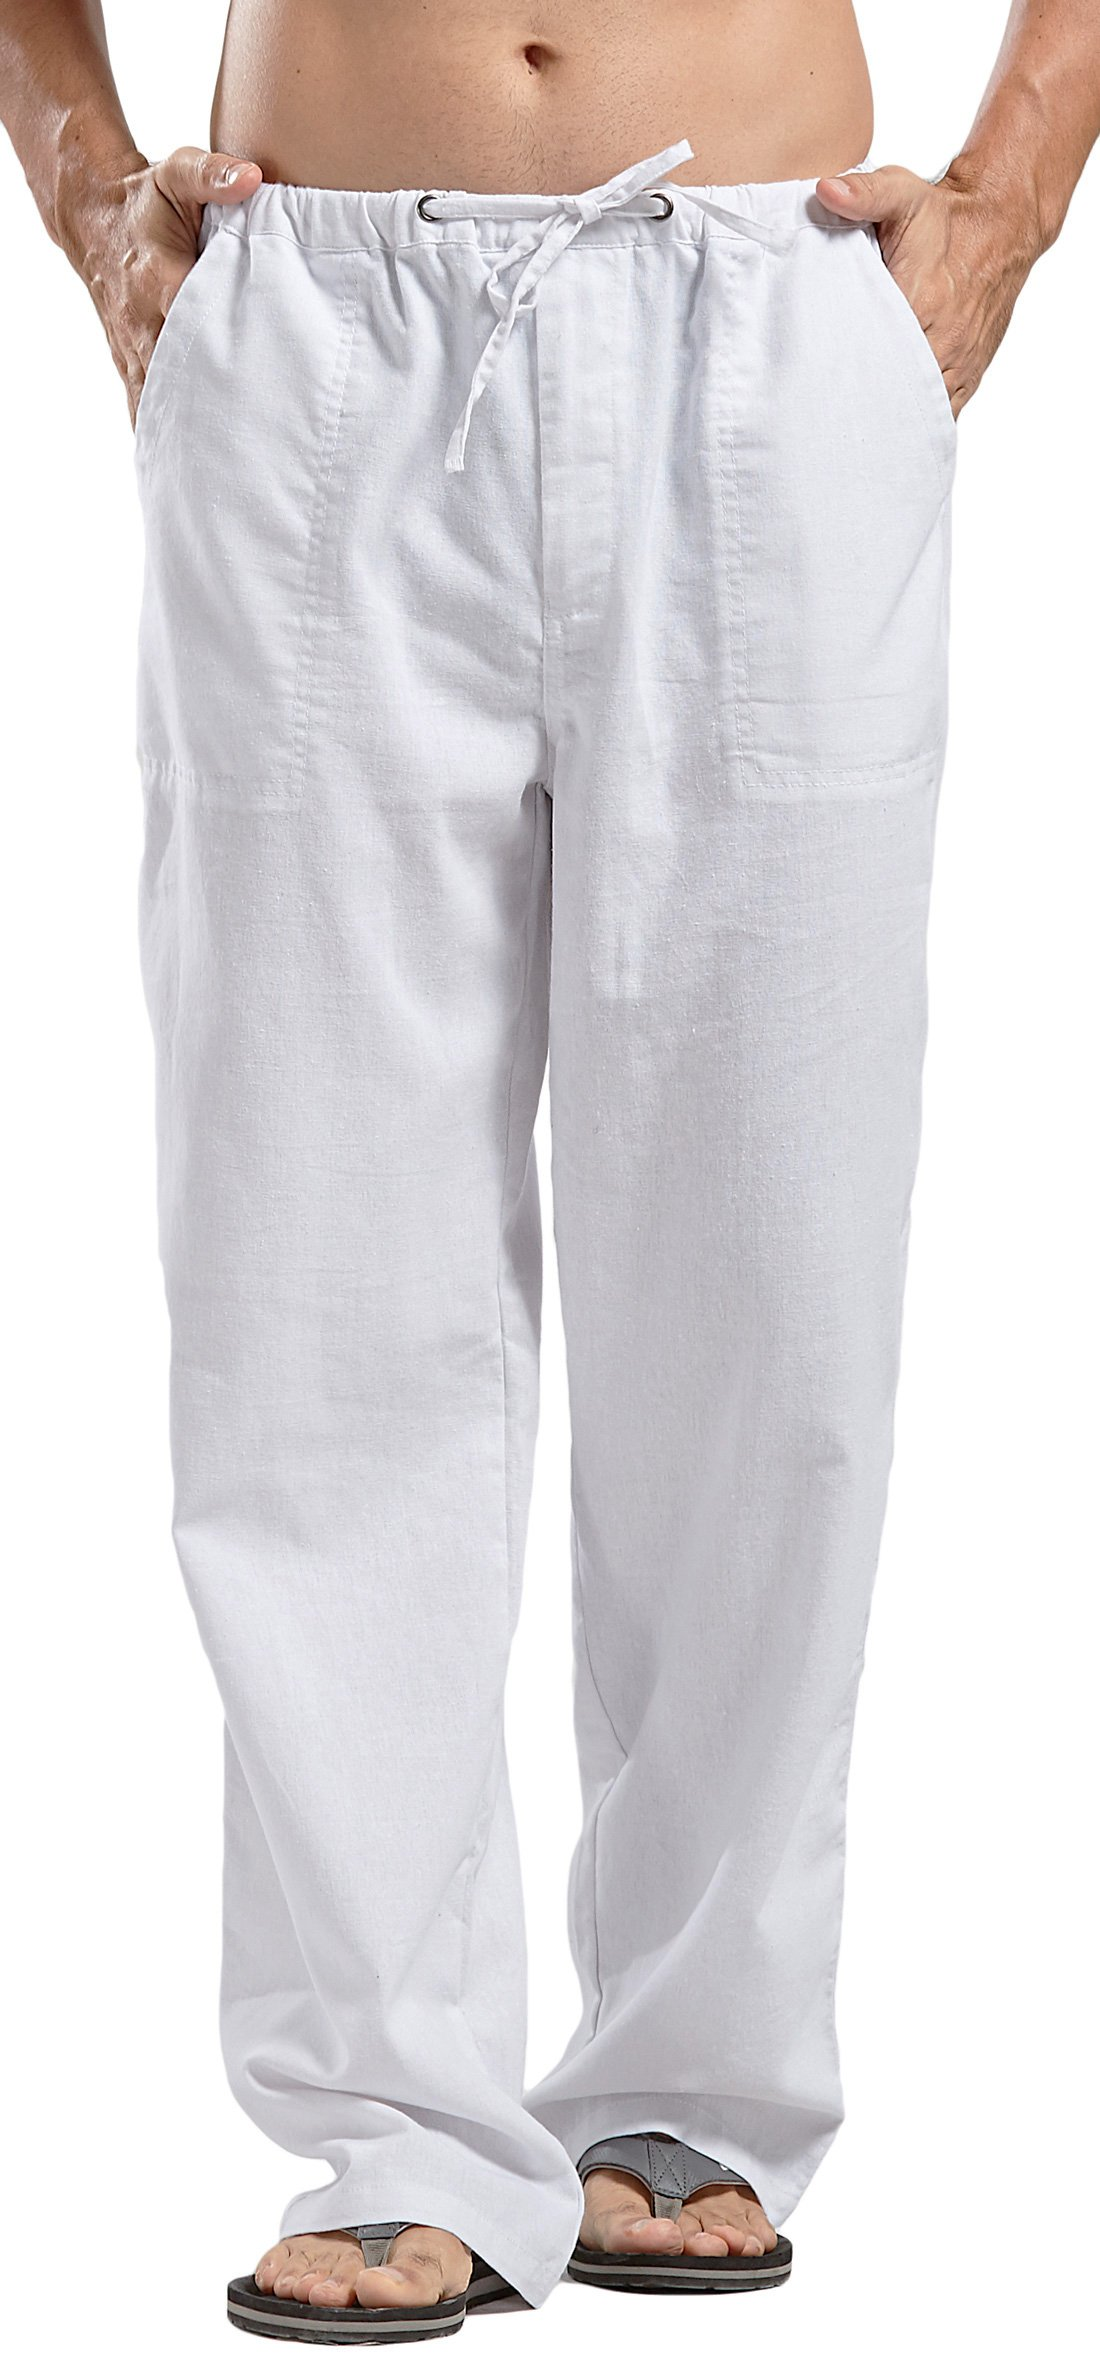 utcoco Qiuse Men's Casual Loose Fit Straight-Legs Stretchy Waist Beach Pants (X-Large, White)